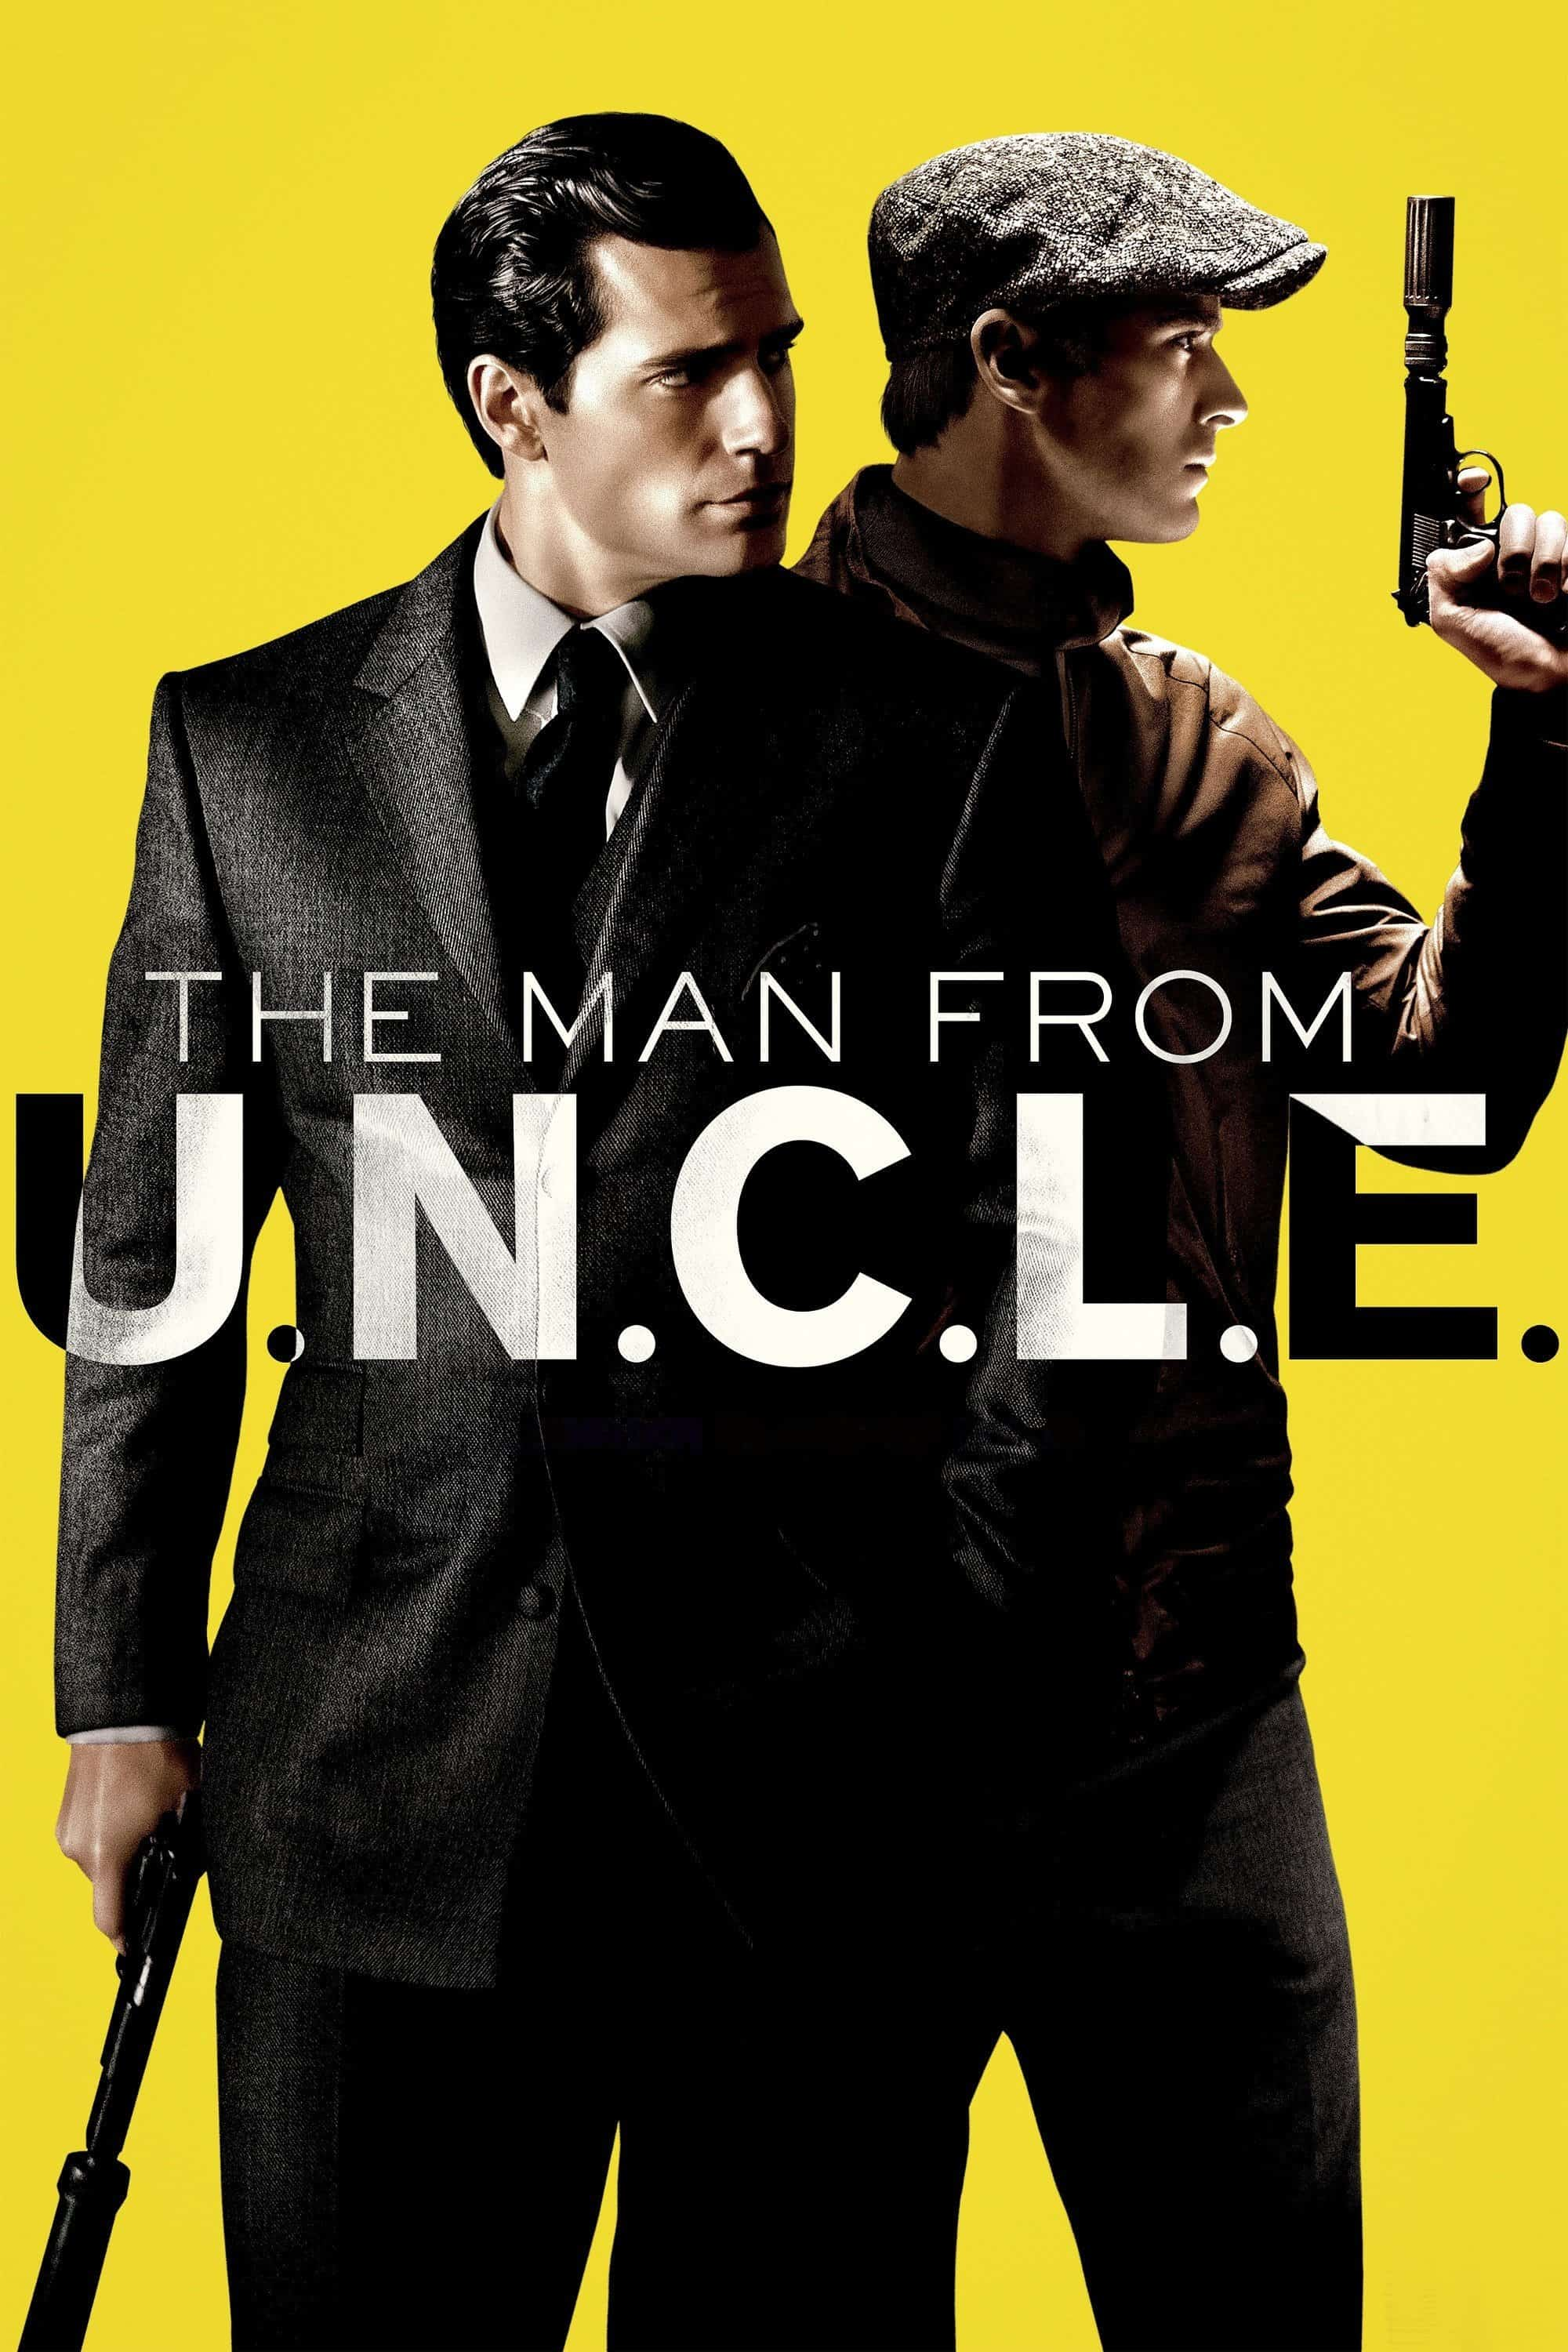 The Man from U.N.C.L.E., 2015